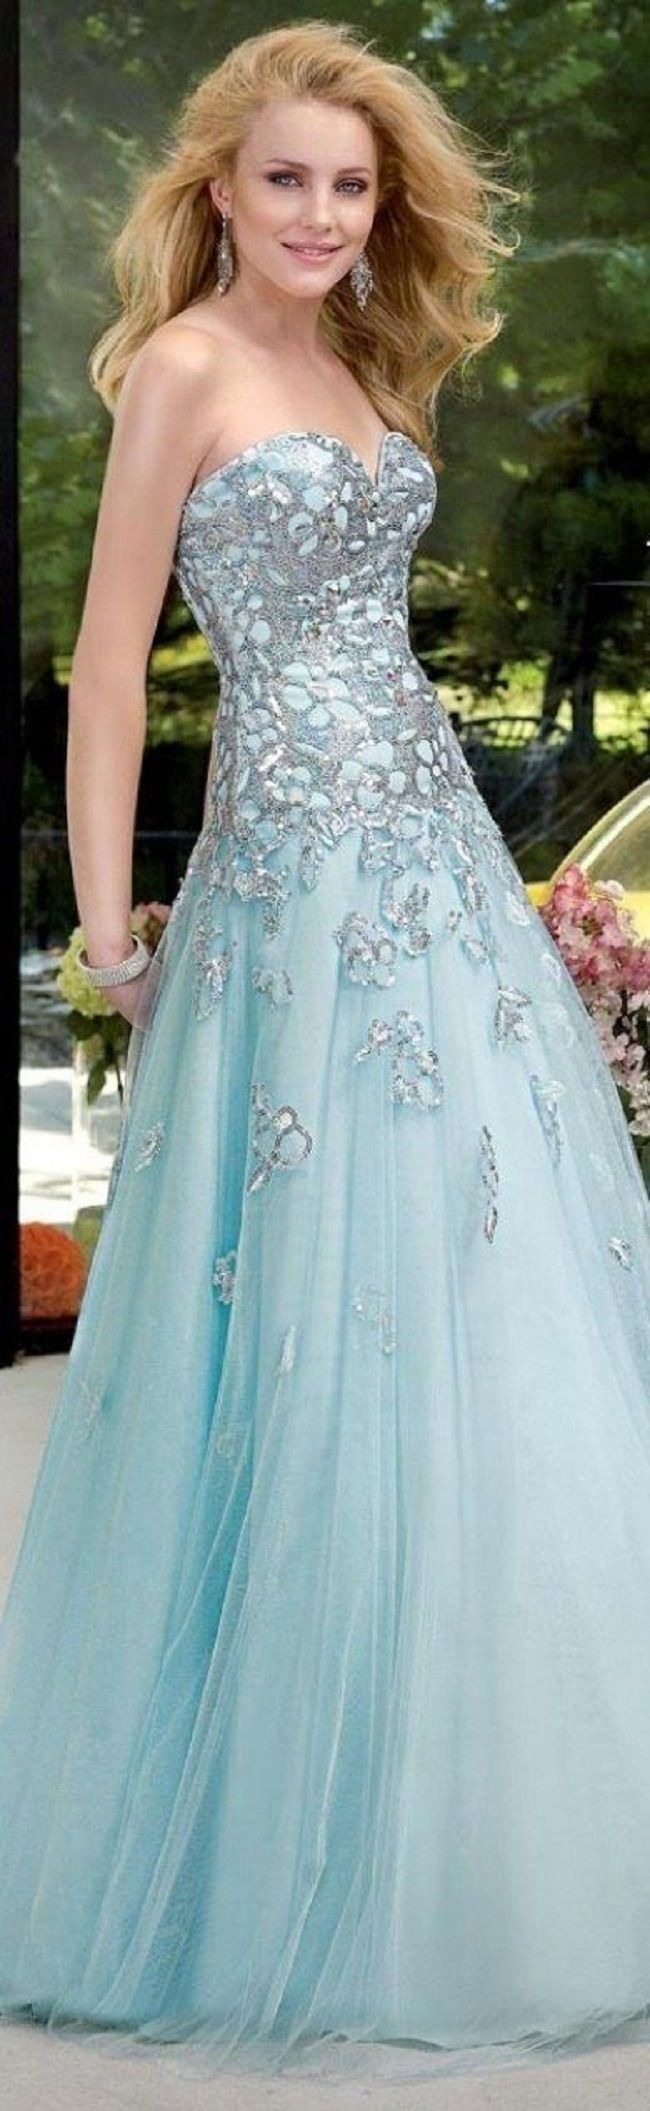 434 best wedding dresses images on Pinterest | Homecoming dresses ...